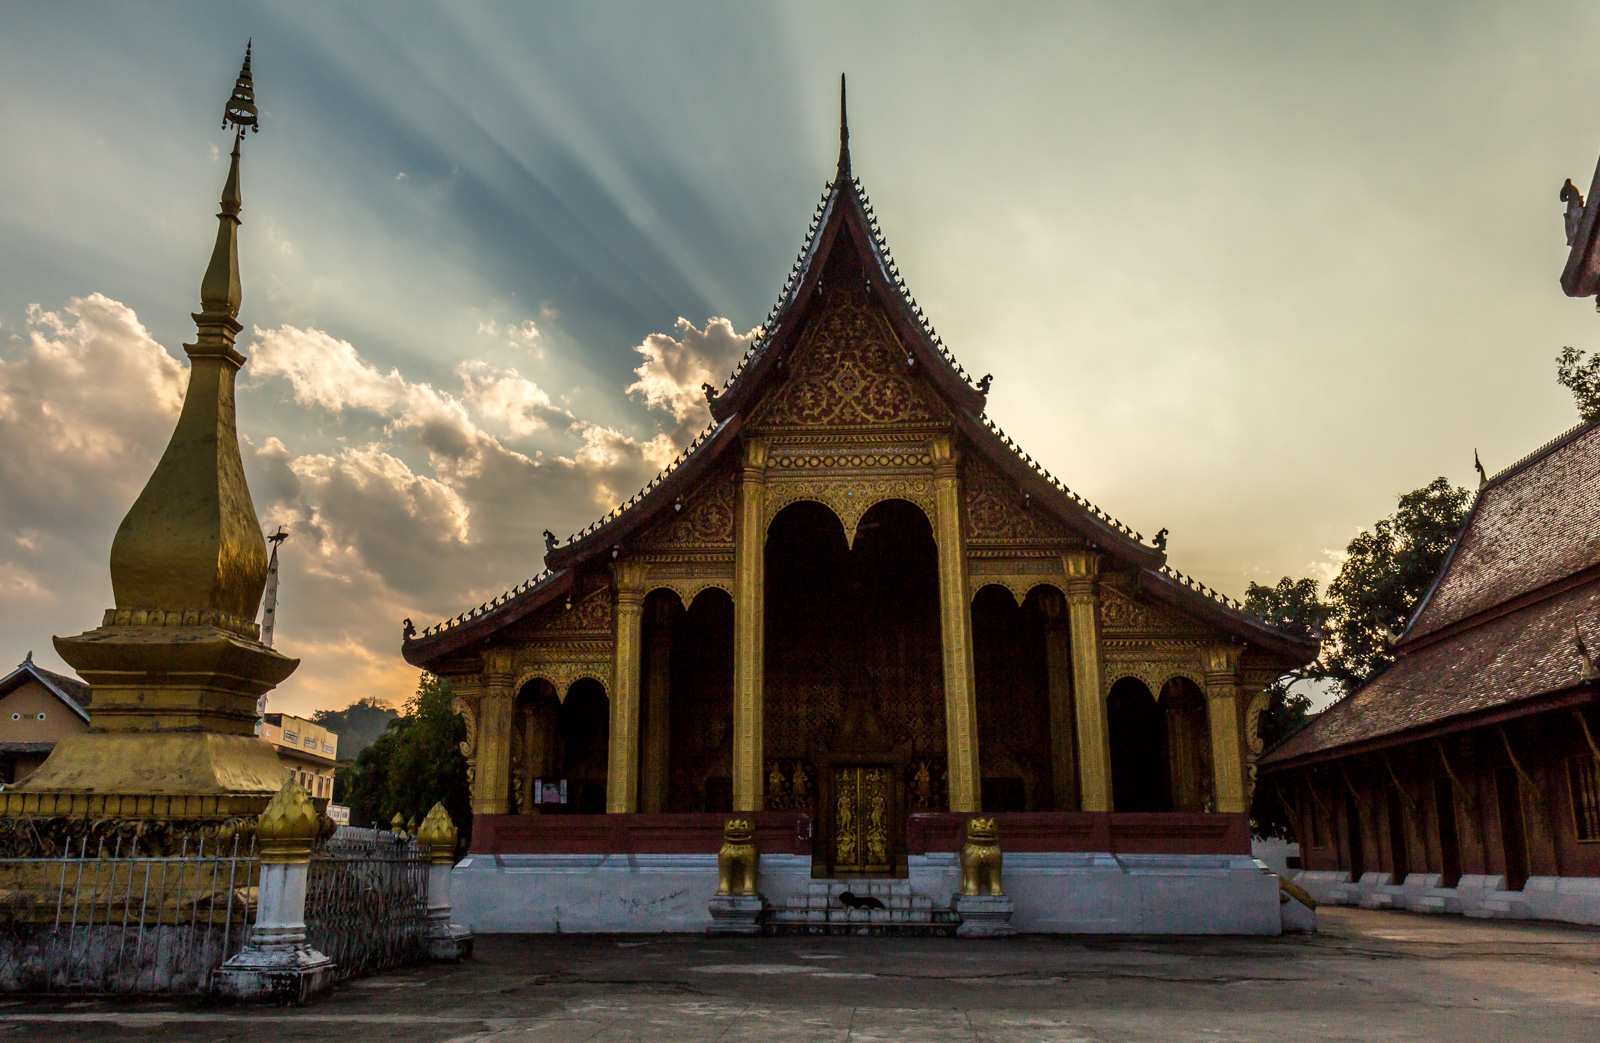 One of Luang Prabang's many temples.